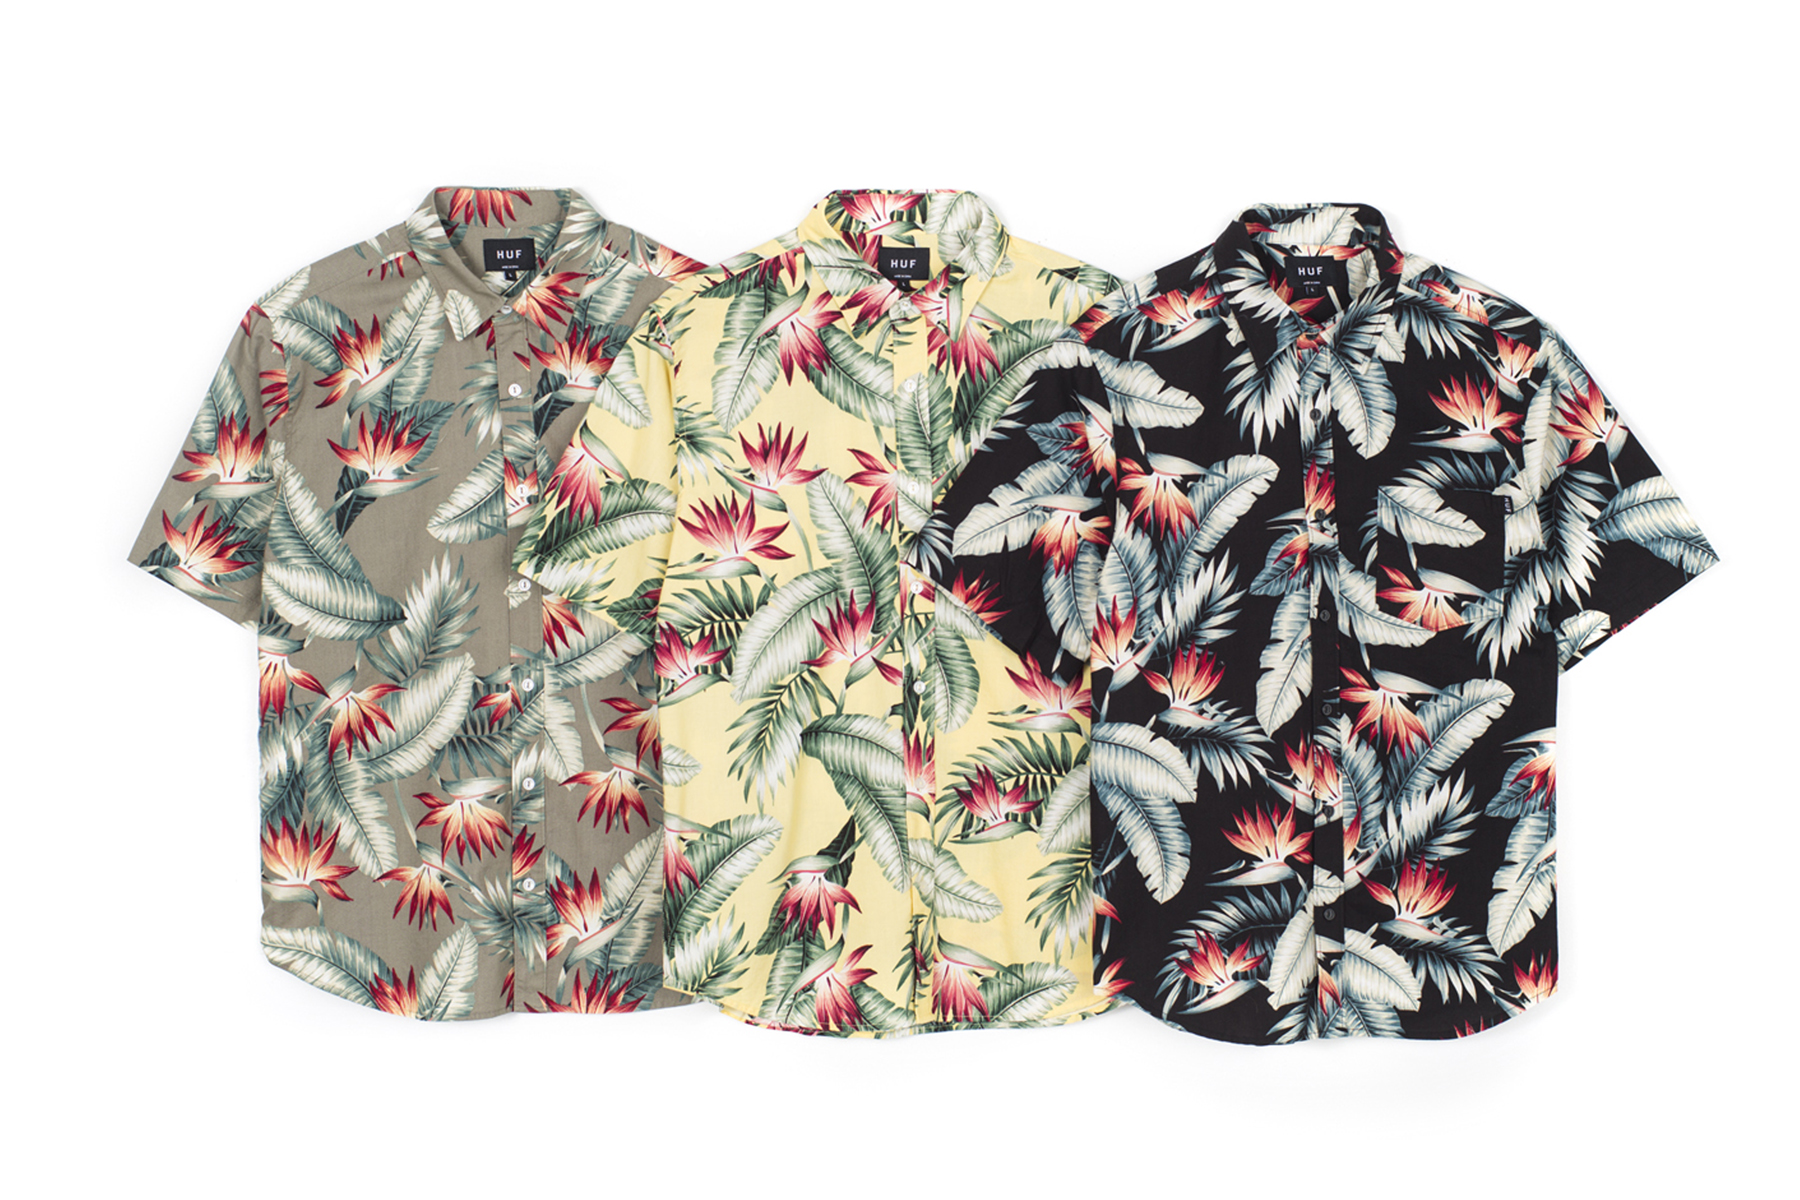 huf 2014 spring summer collection